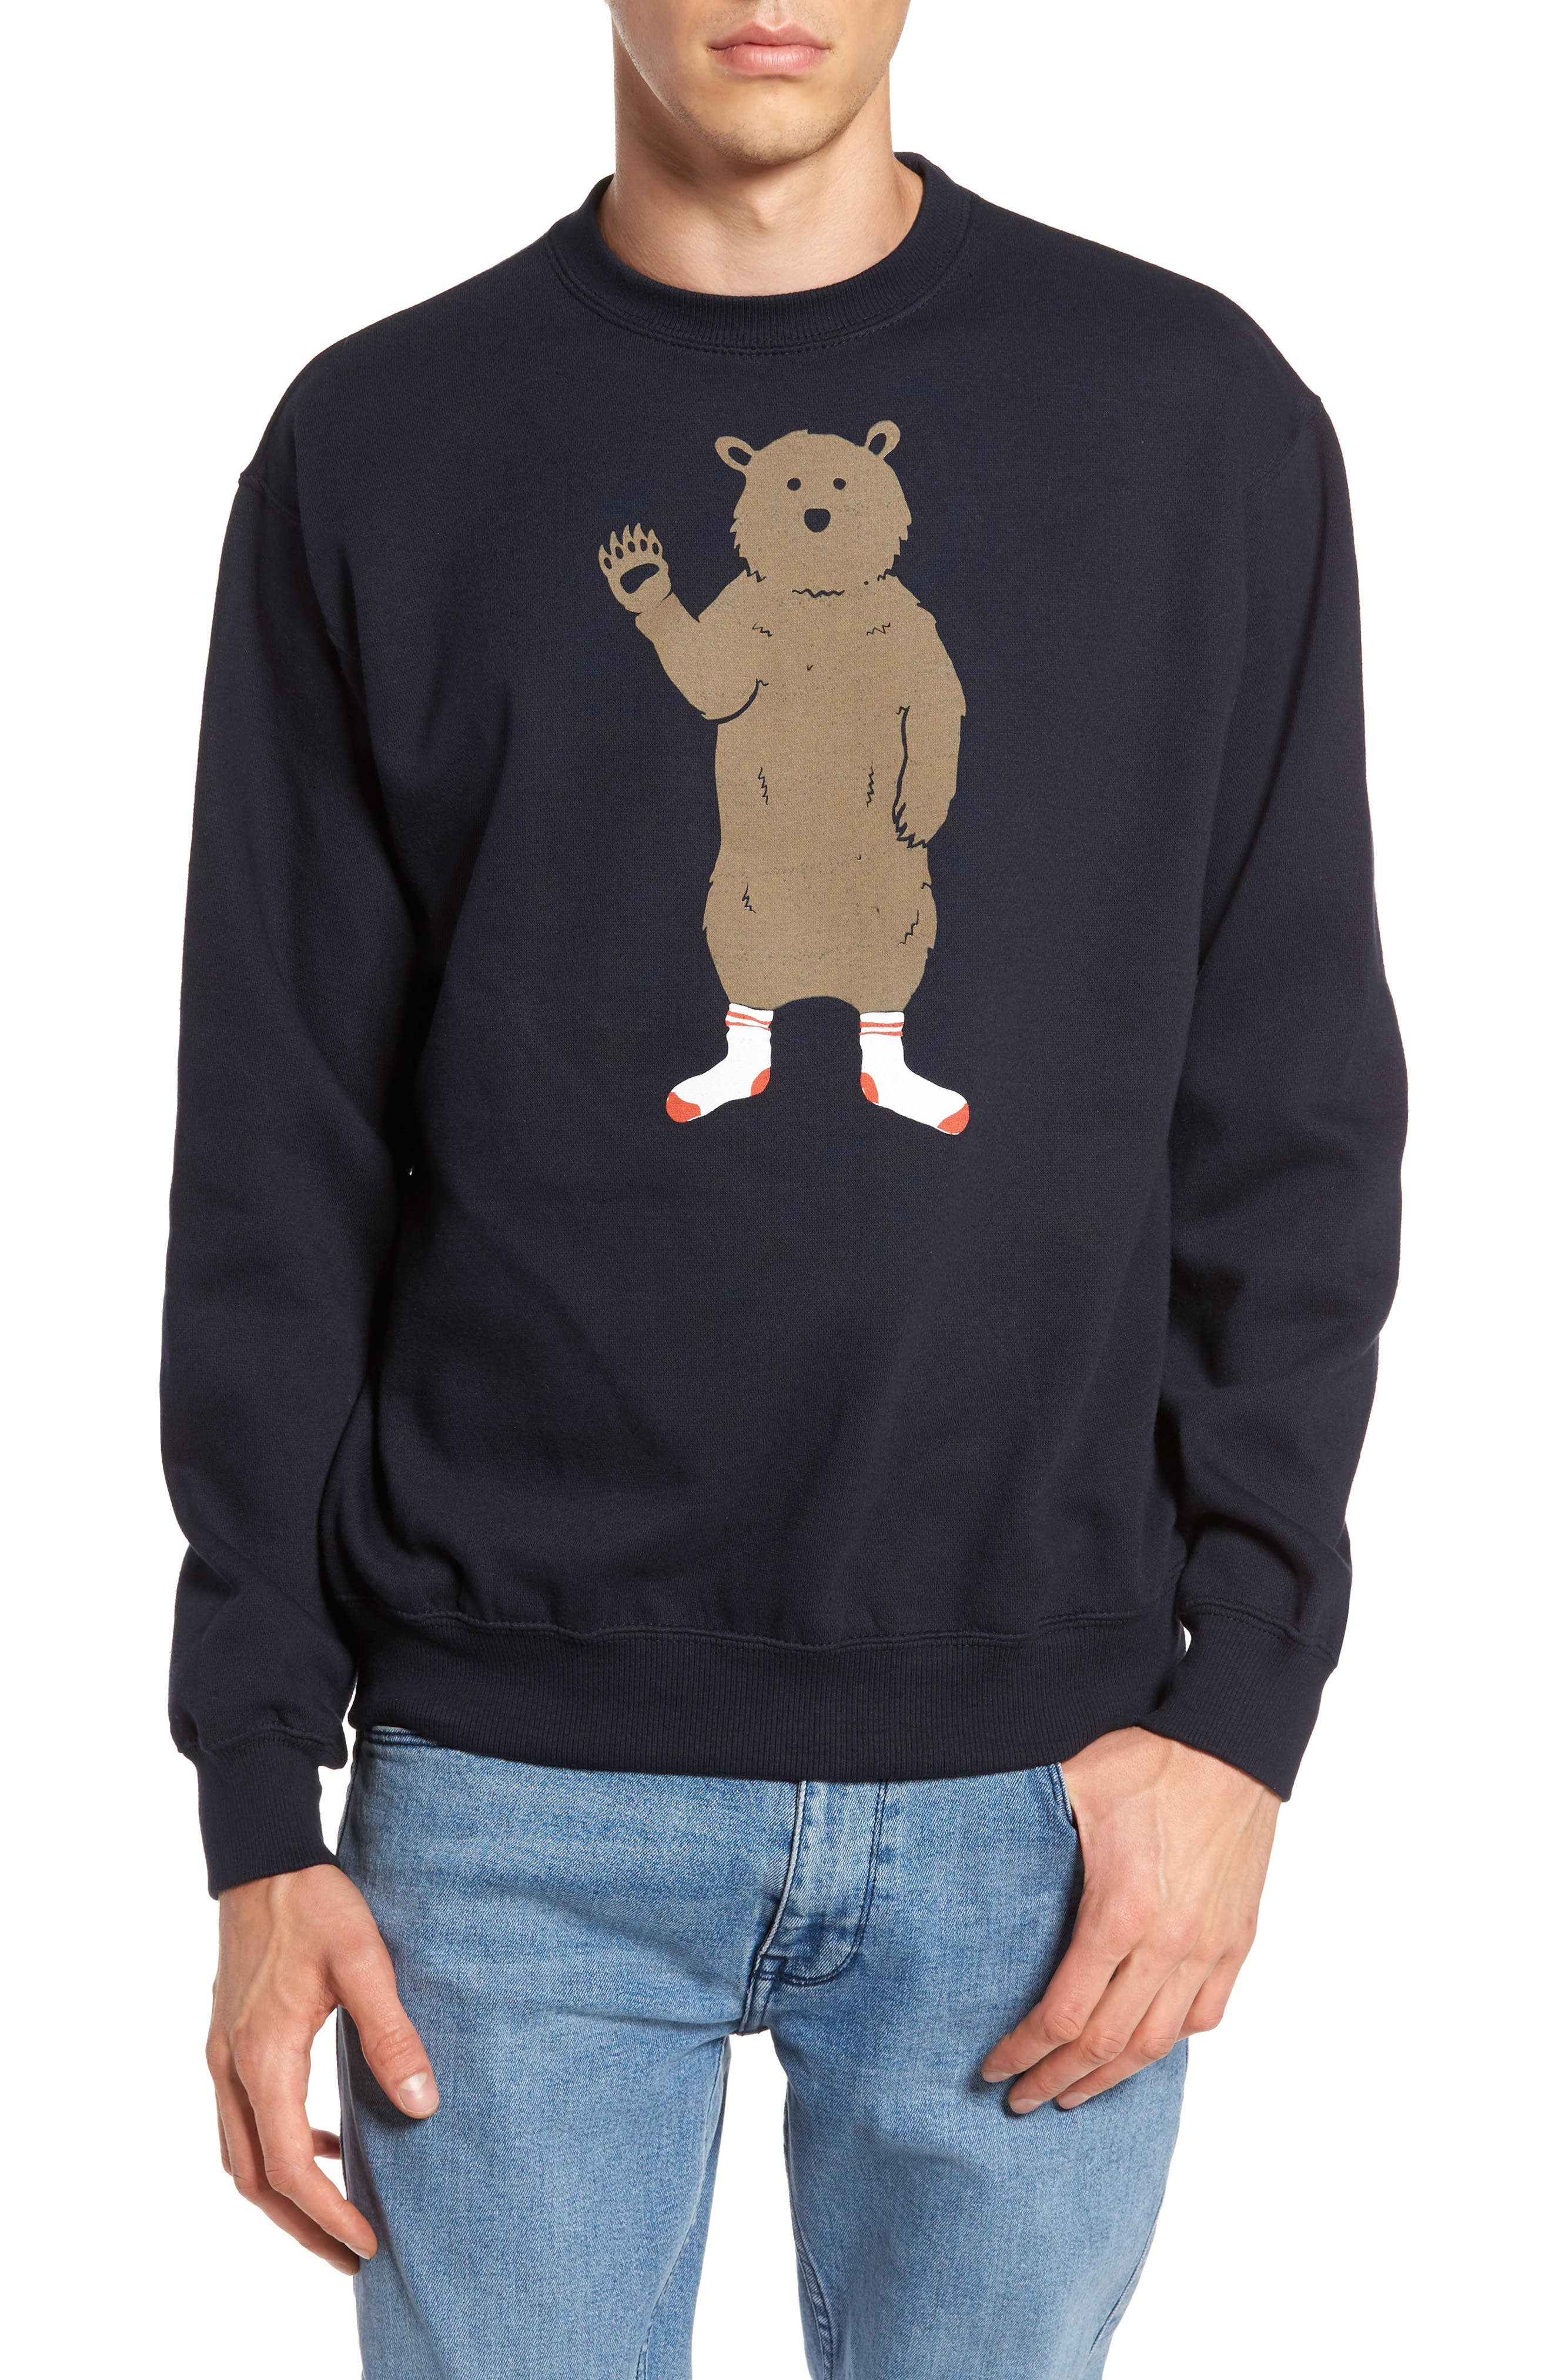 Bear in Socks Sweatshirt,                         Main,                         color, Navy